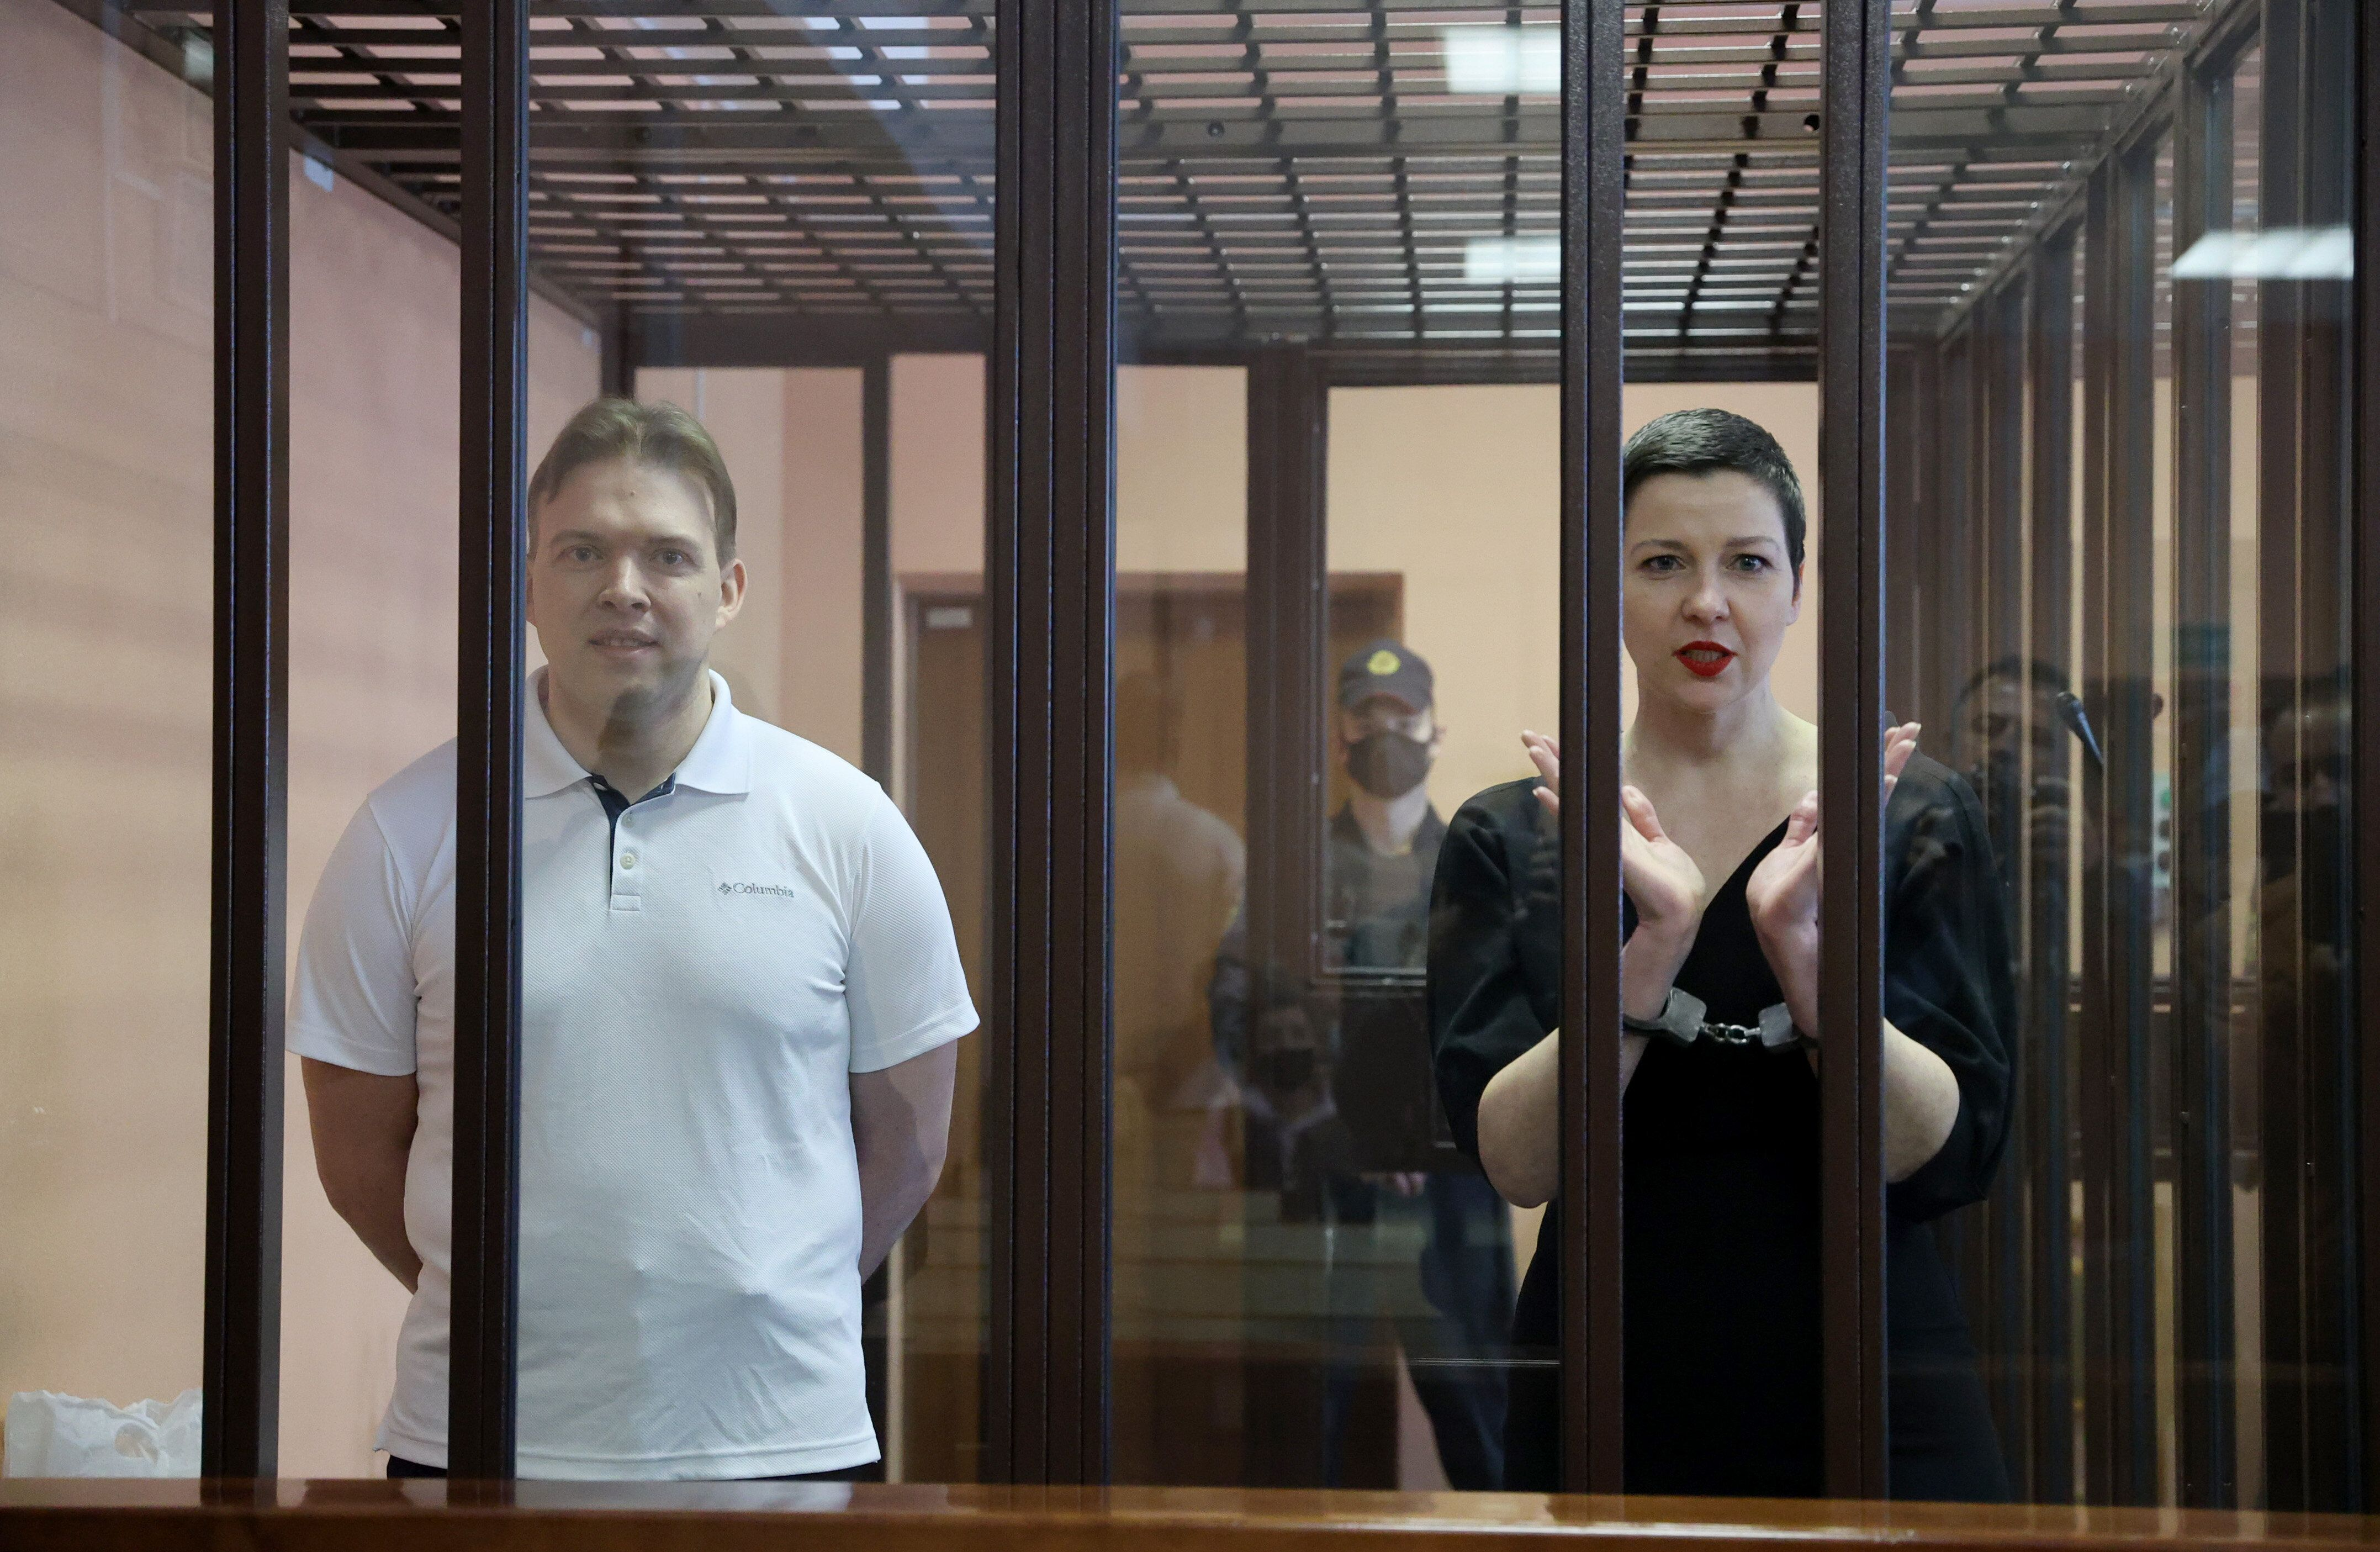 Belarusian opposition activists Maxim Znak, left, and Maria Kolesnikova appear for a sentencing hearing at the Minsk Region C